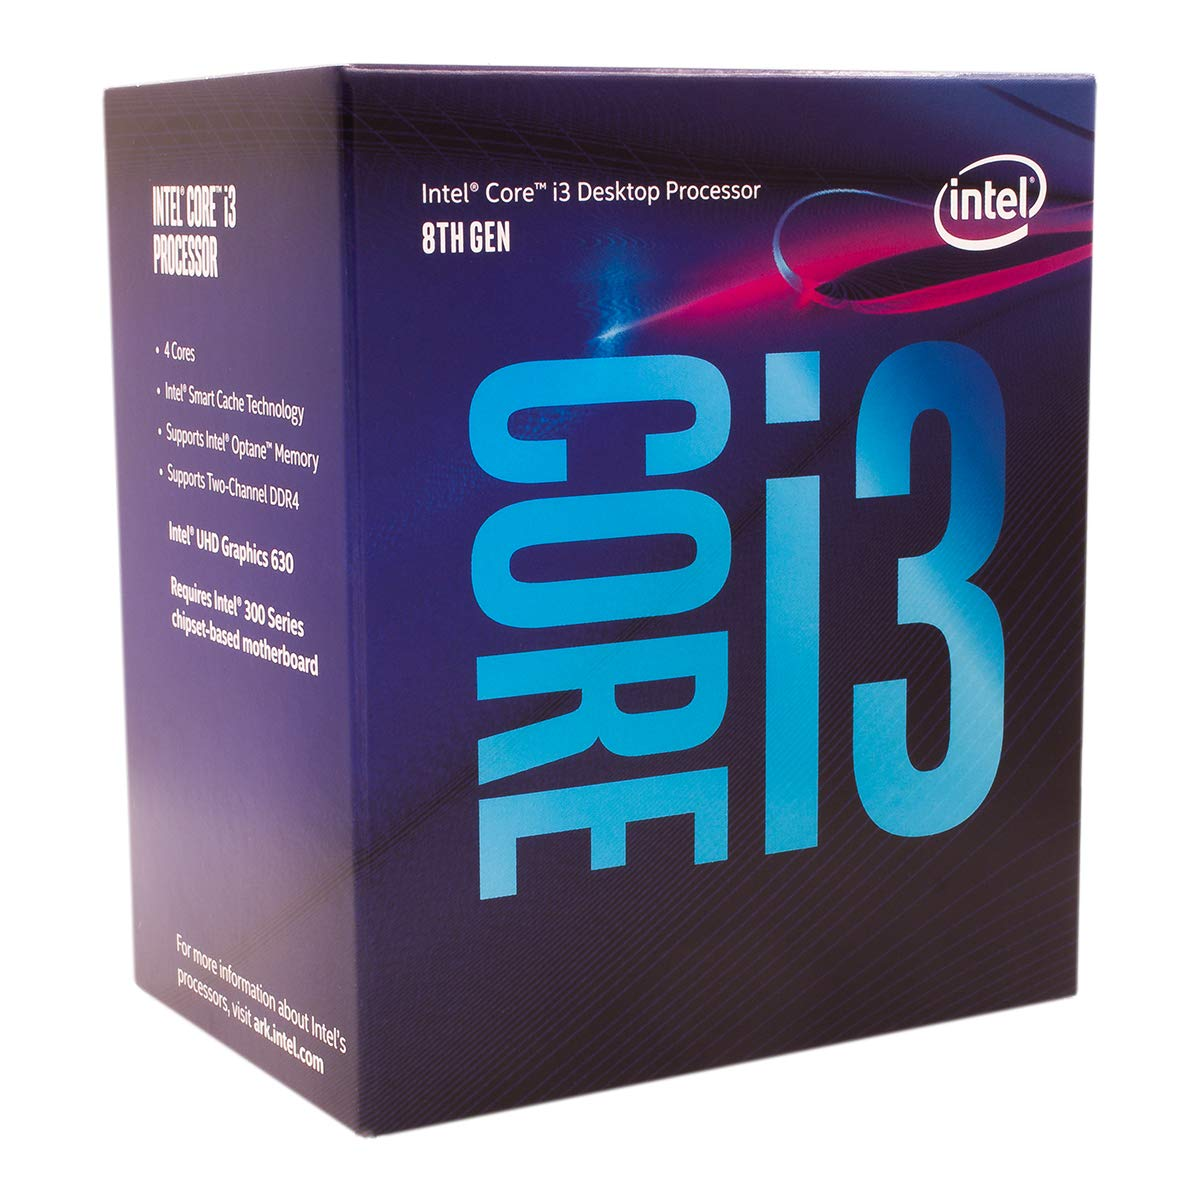 Intel Core i3-8100 4 Cores up to 3.6 GHz Turbo Unlocked LGA1